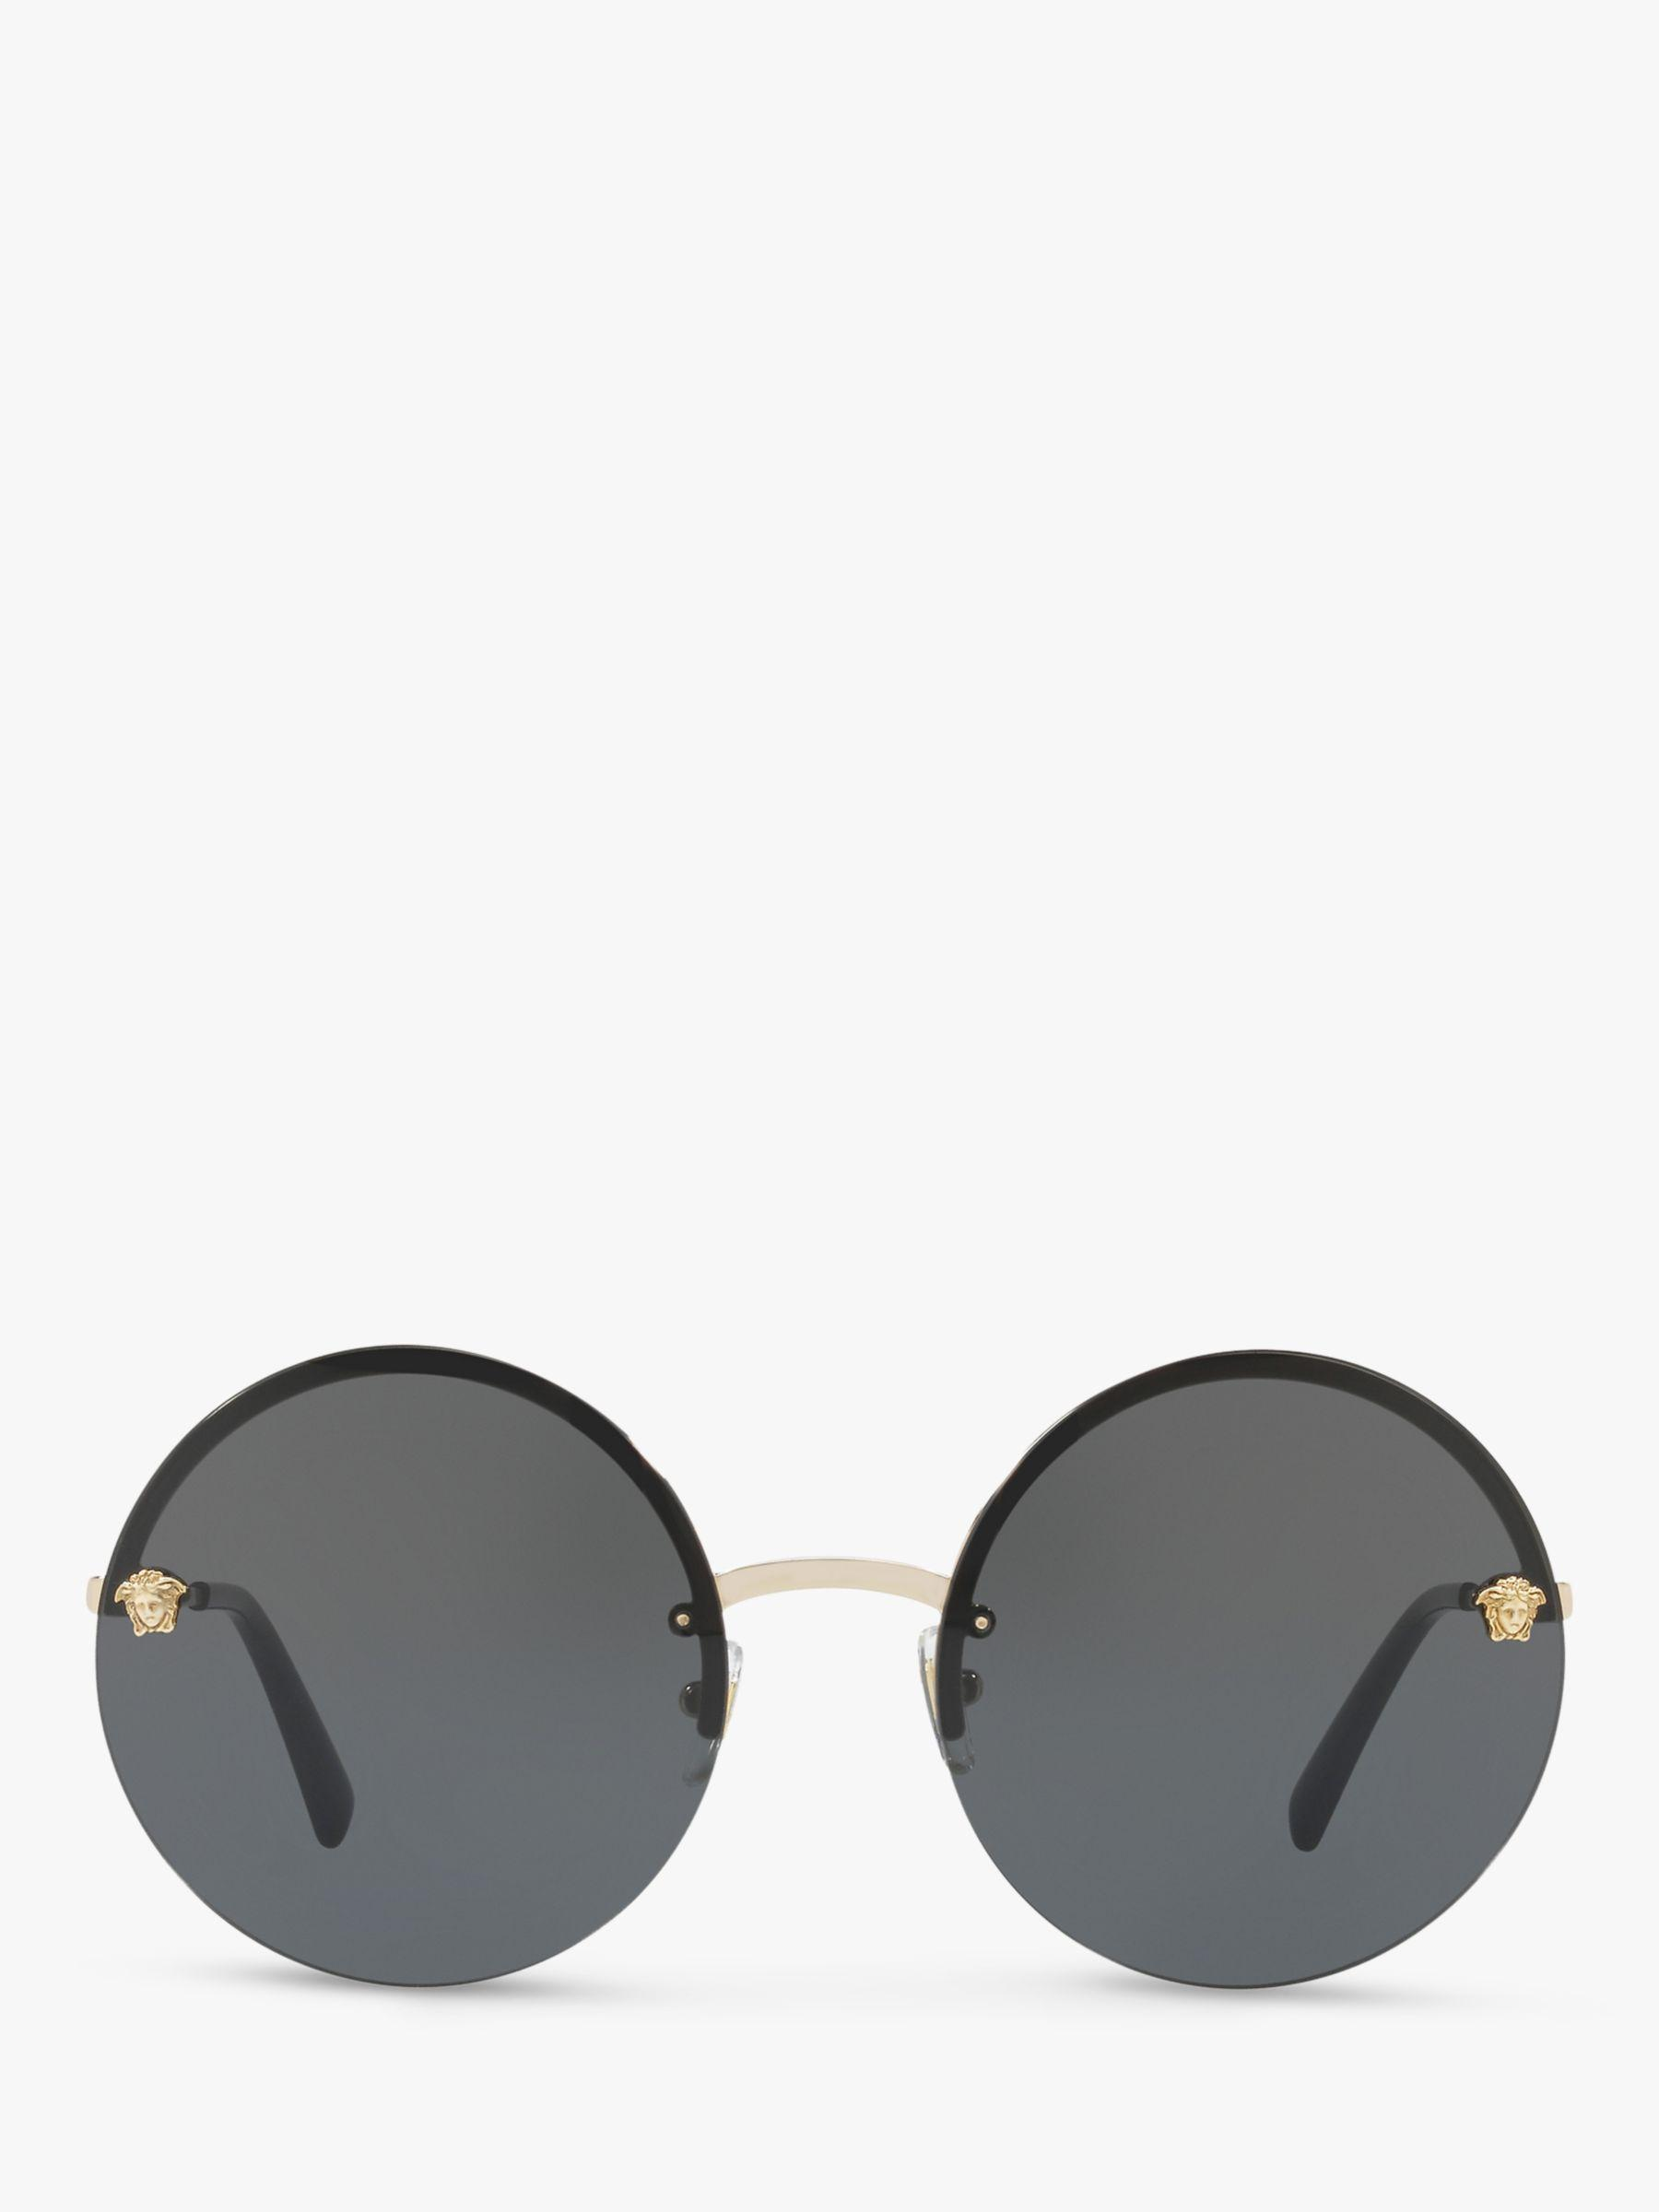 ca4515f549 Versace - Yellow Pale Gold Ve2176 Round Sunglasses - Lyst. View fullscreen